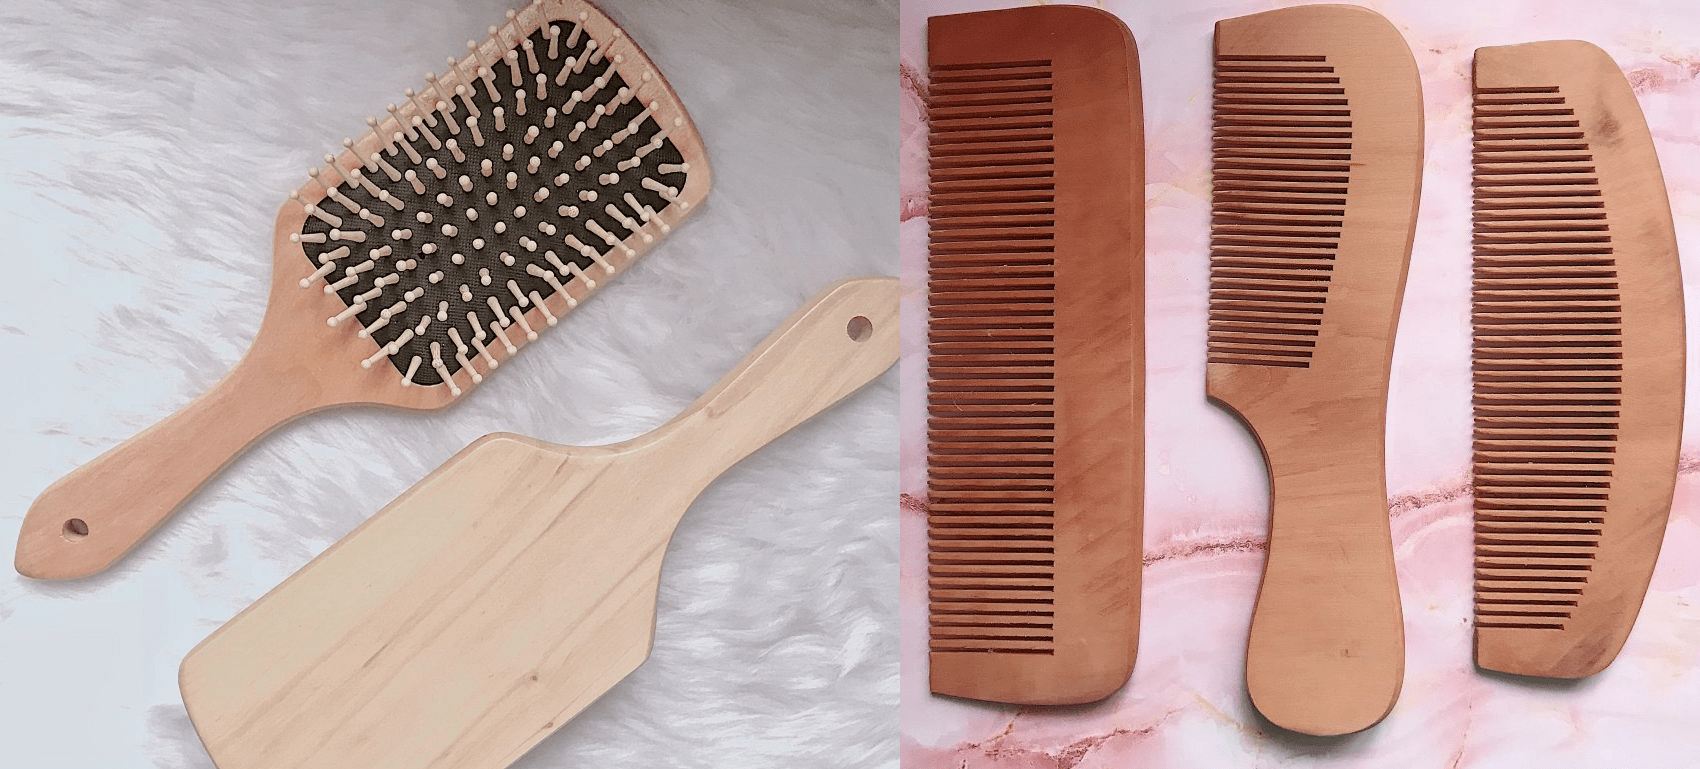 sustainable makeup and skincare - paraluman combs